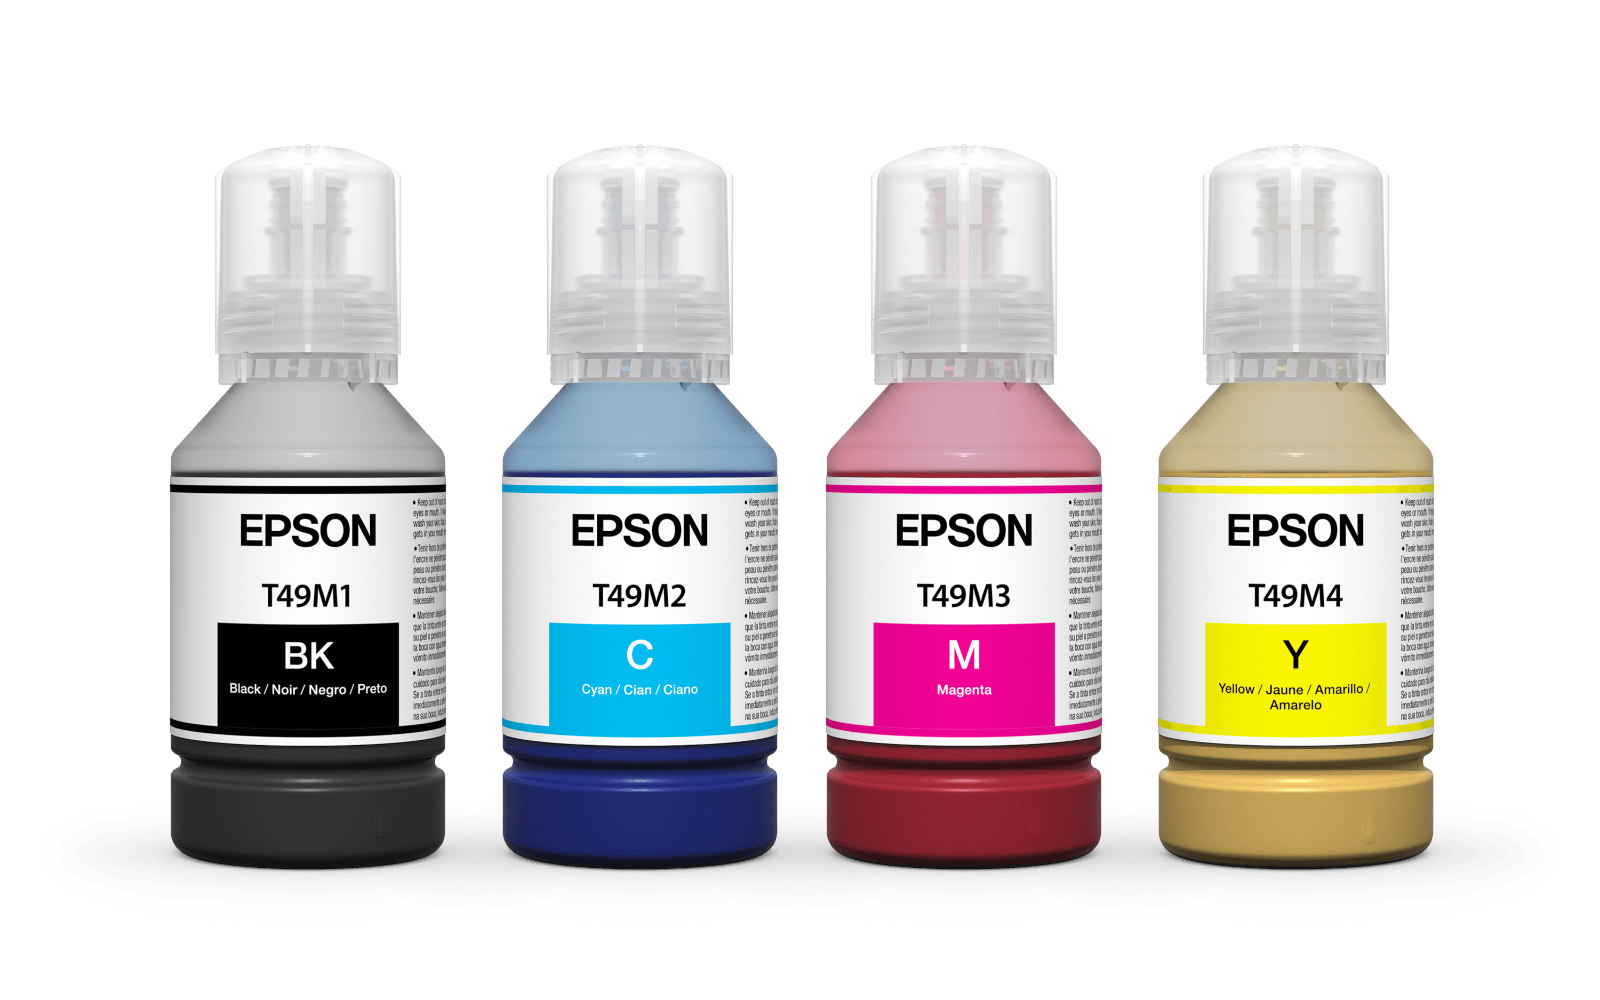 Epson F-570 Ink